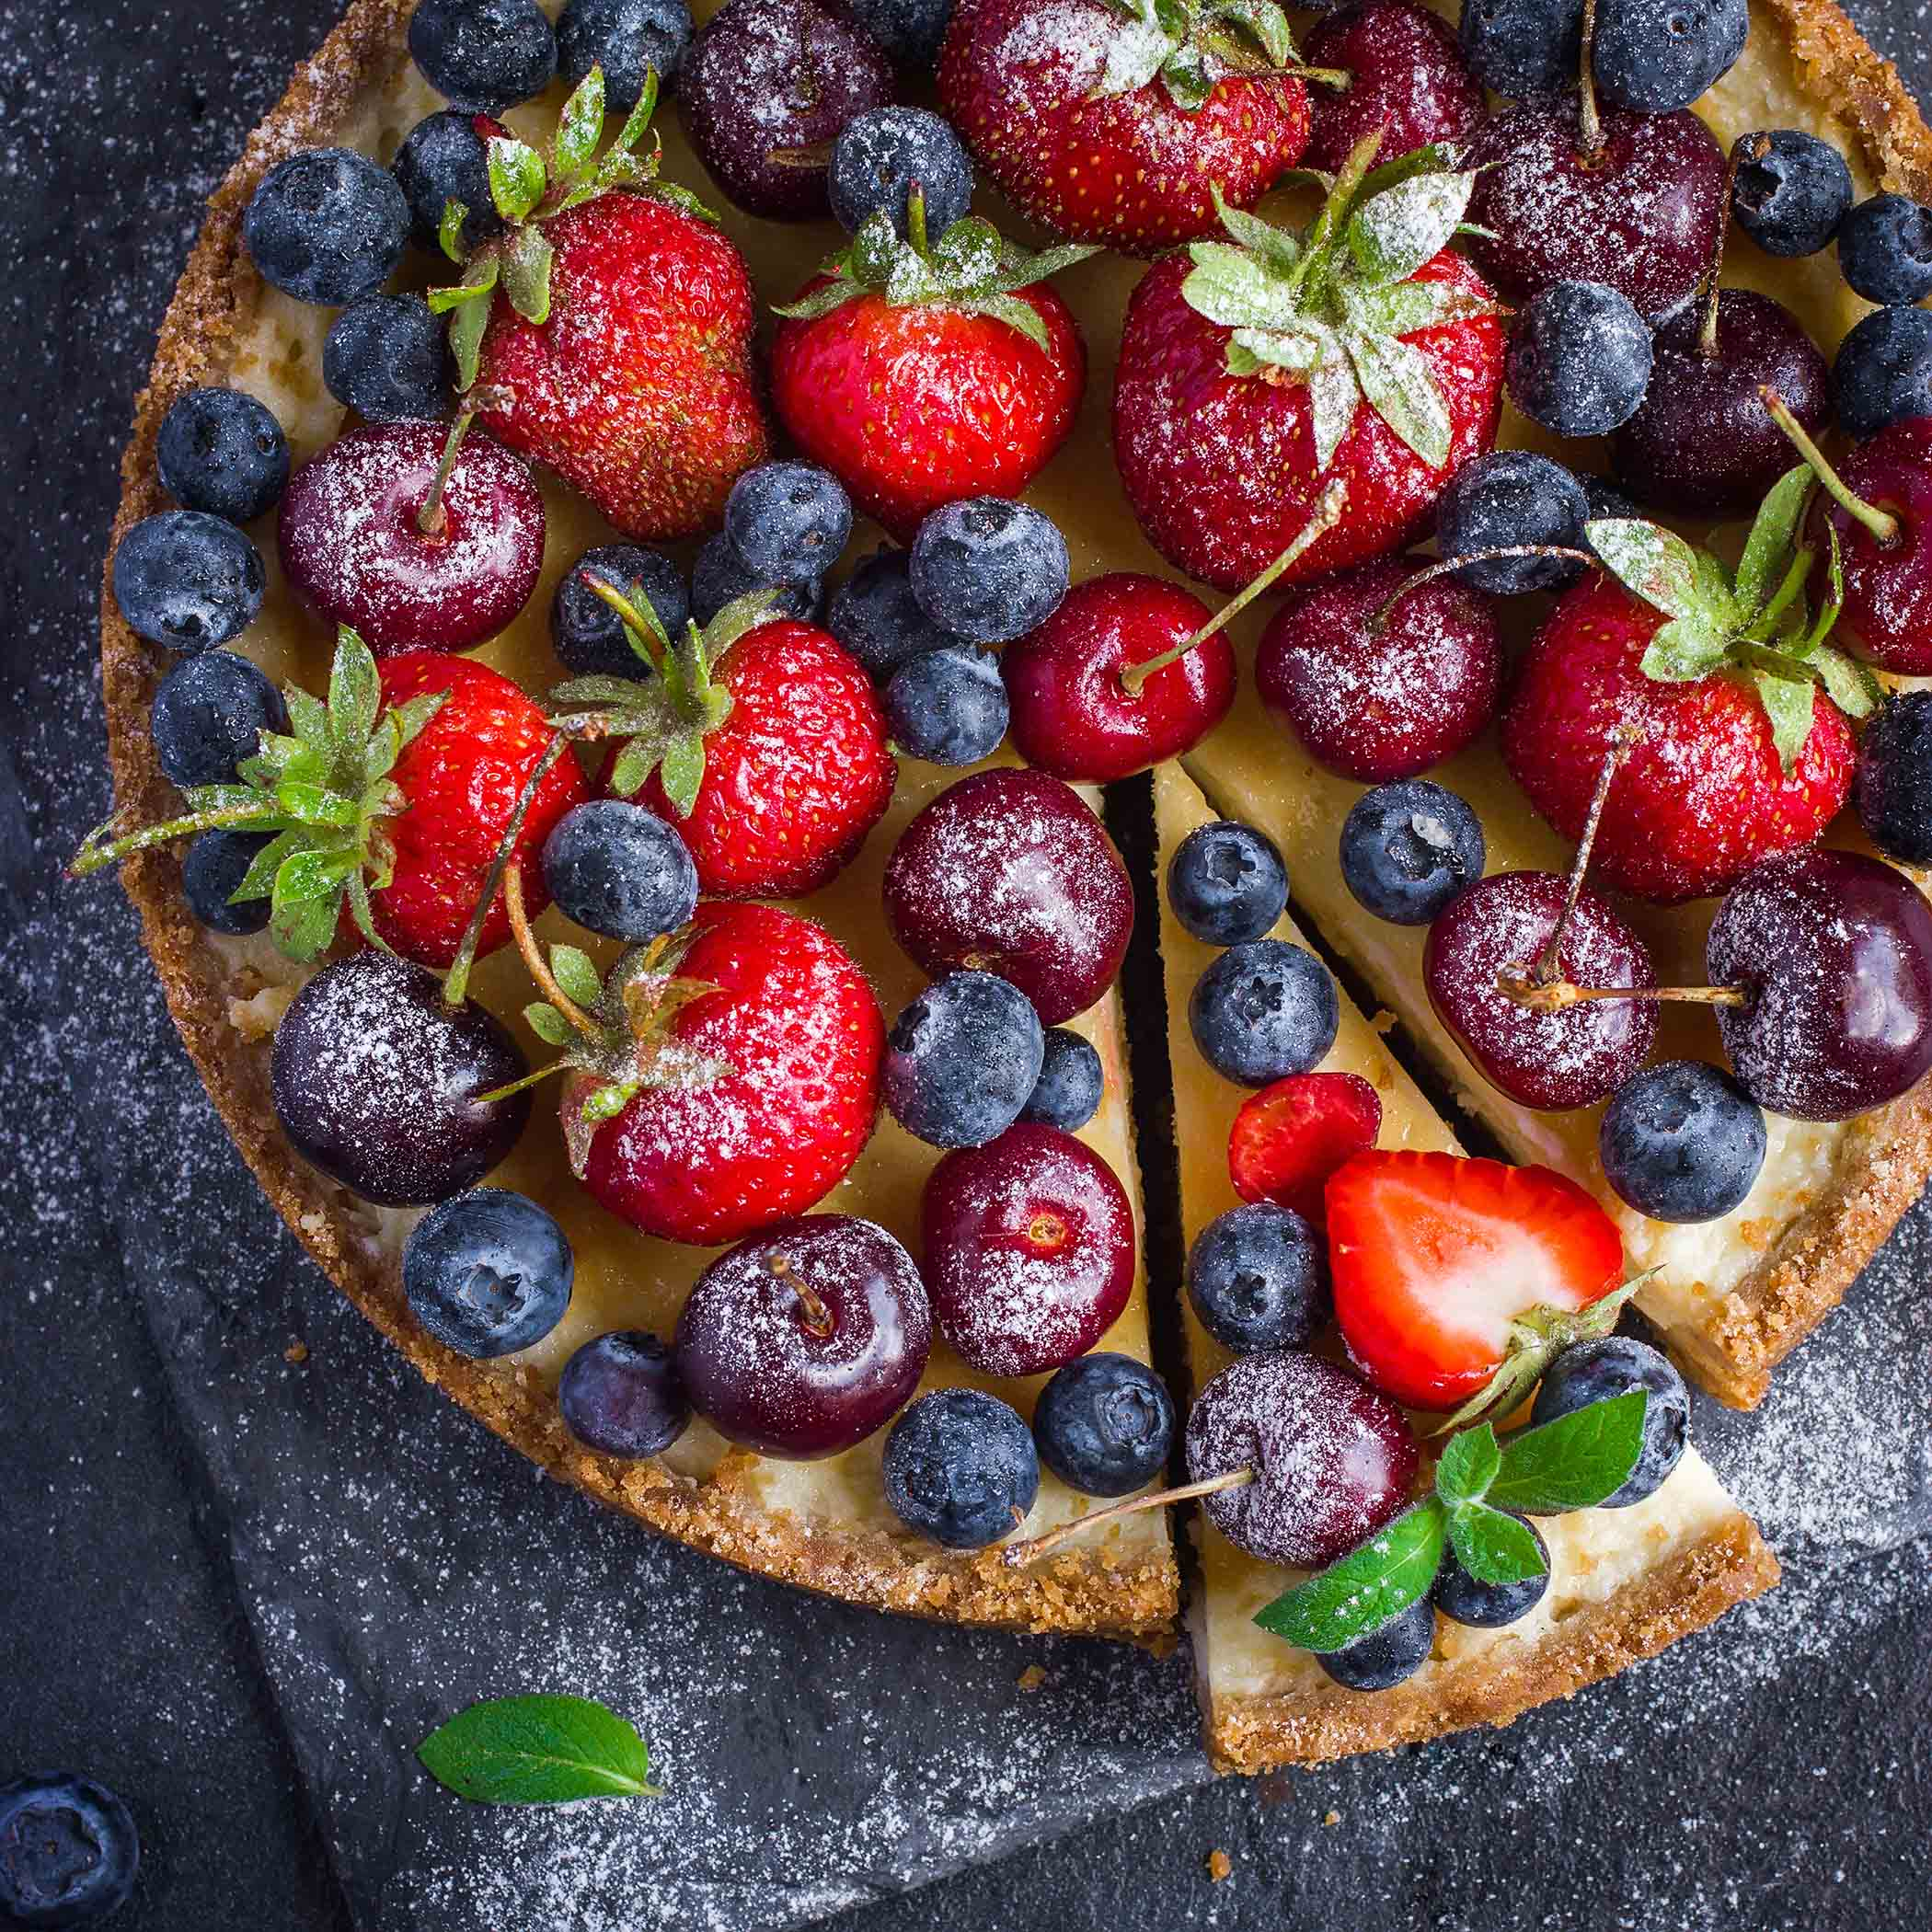 Berry Tart Cheesecake